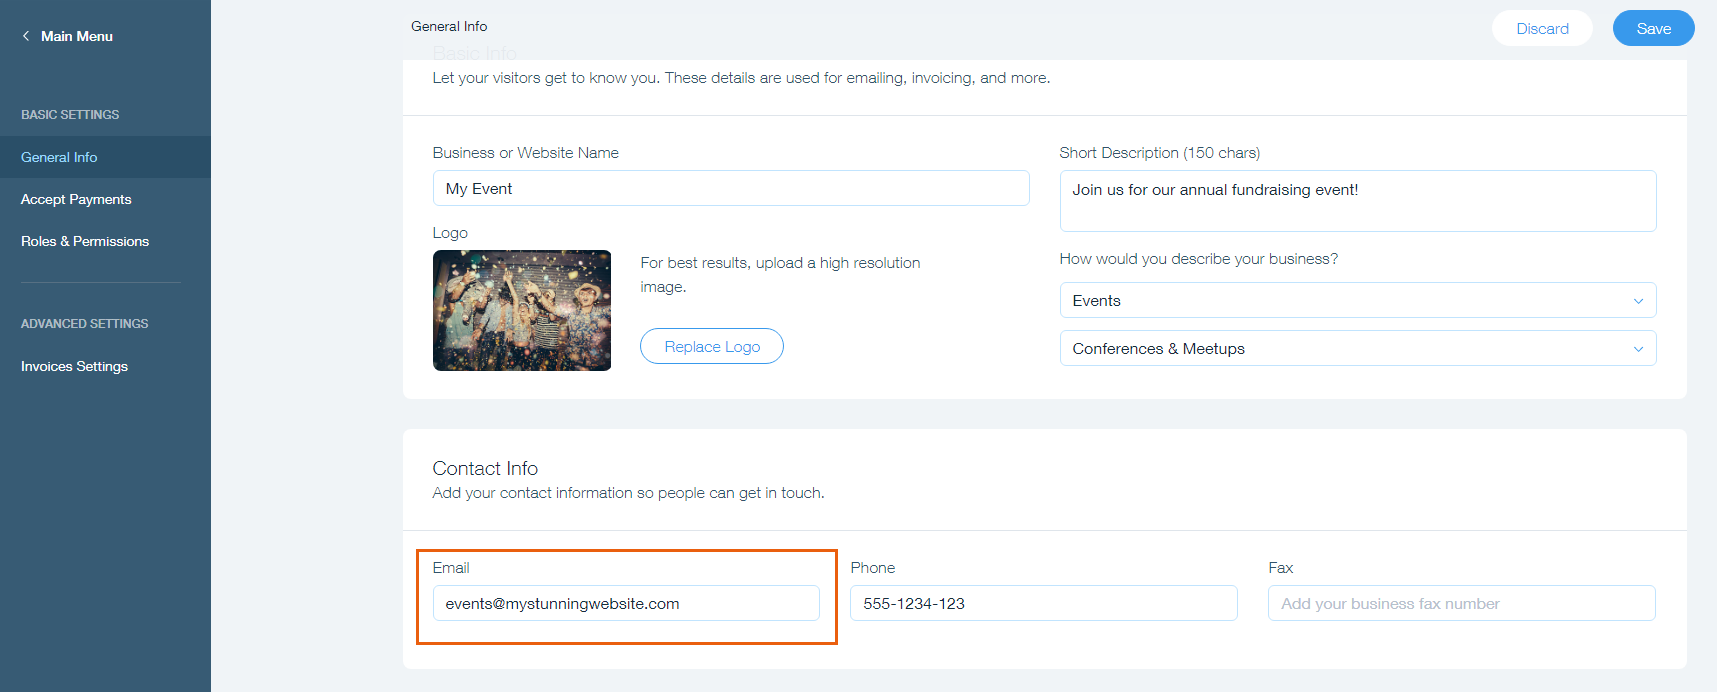 Changing Your Email Address For Rsvp Notifications In Wix Events